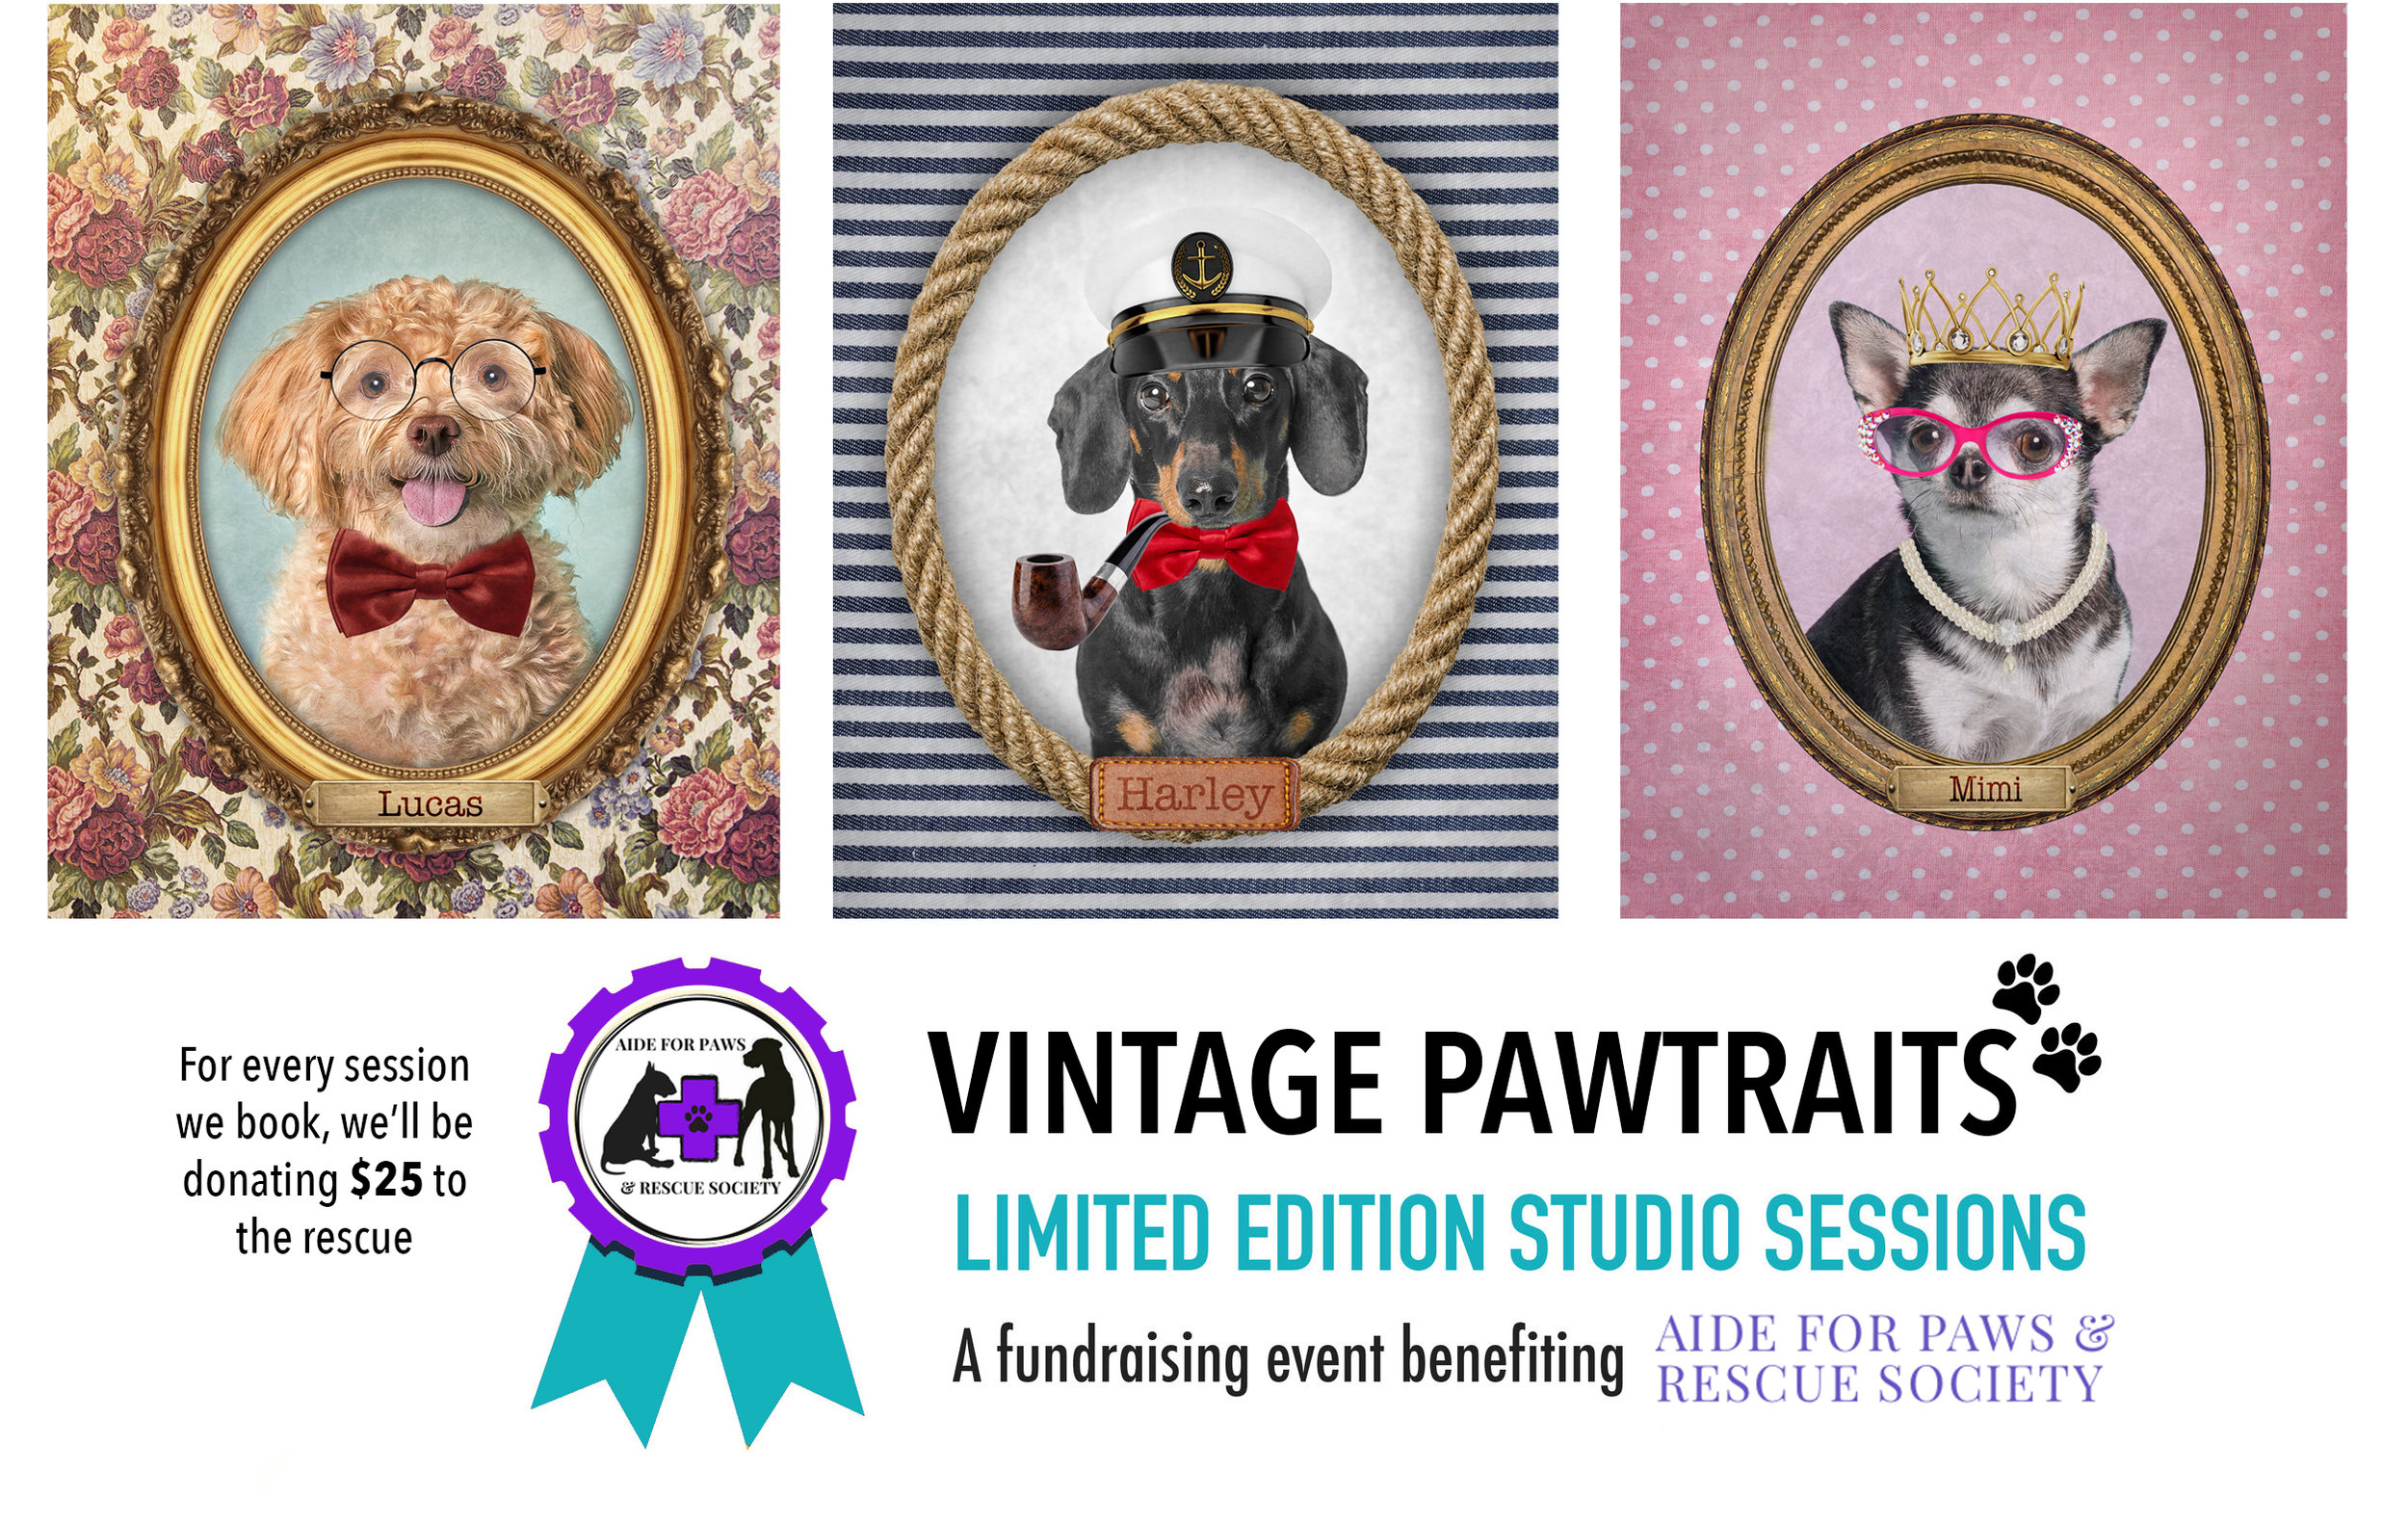 Vintage+Pawtraits+event+Aide4Paws.jpg